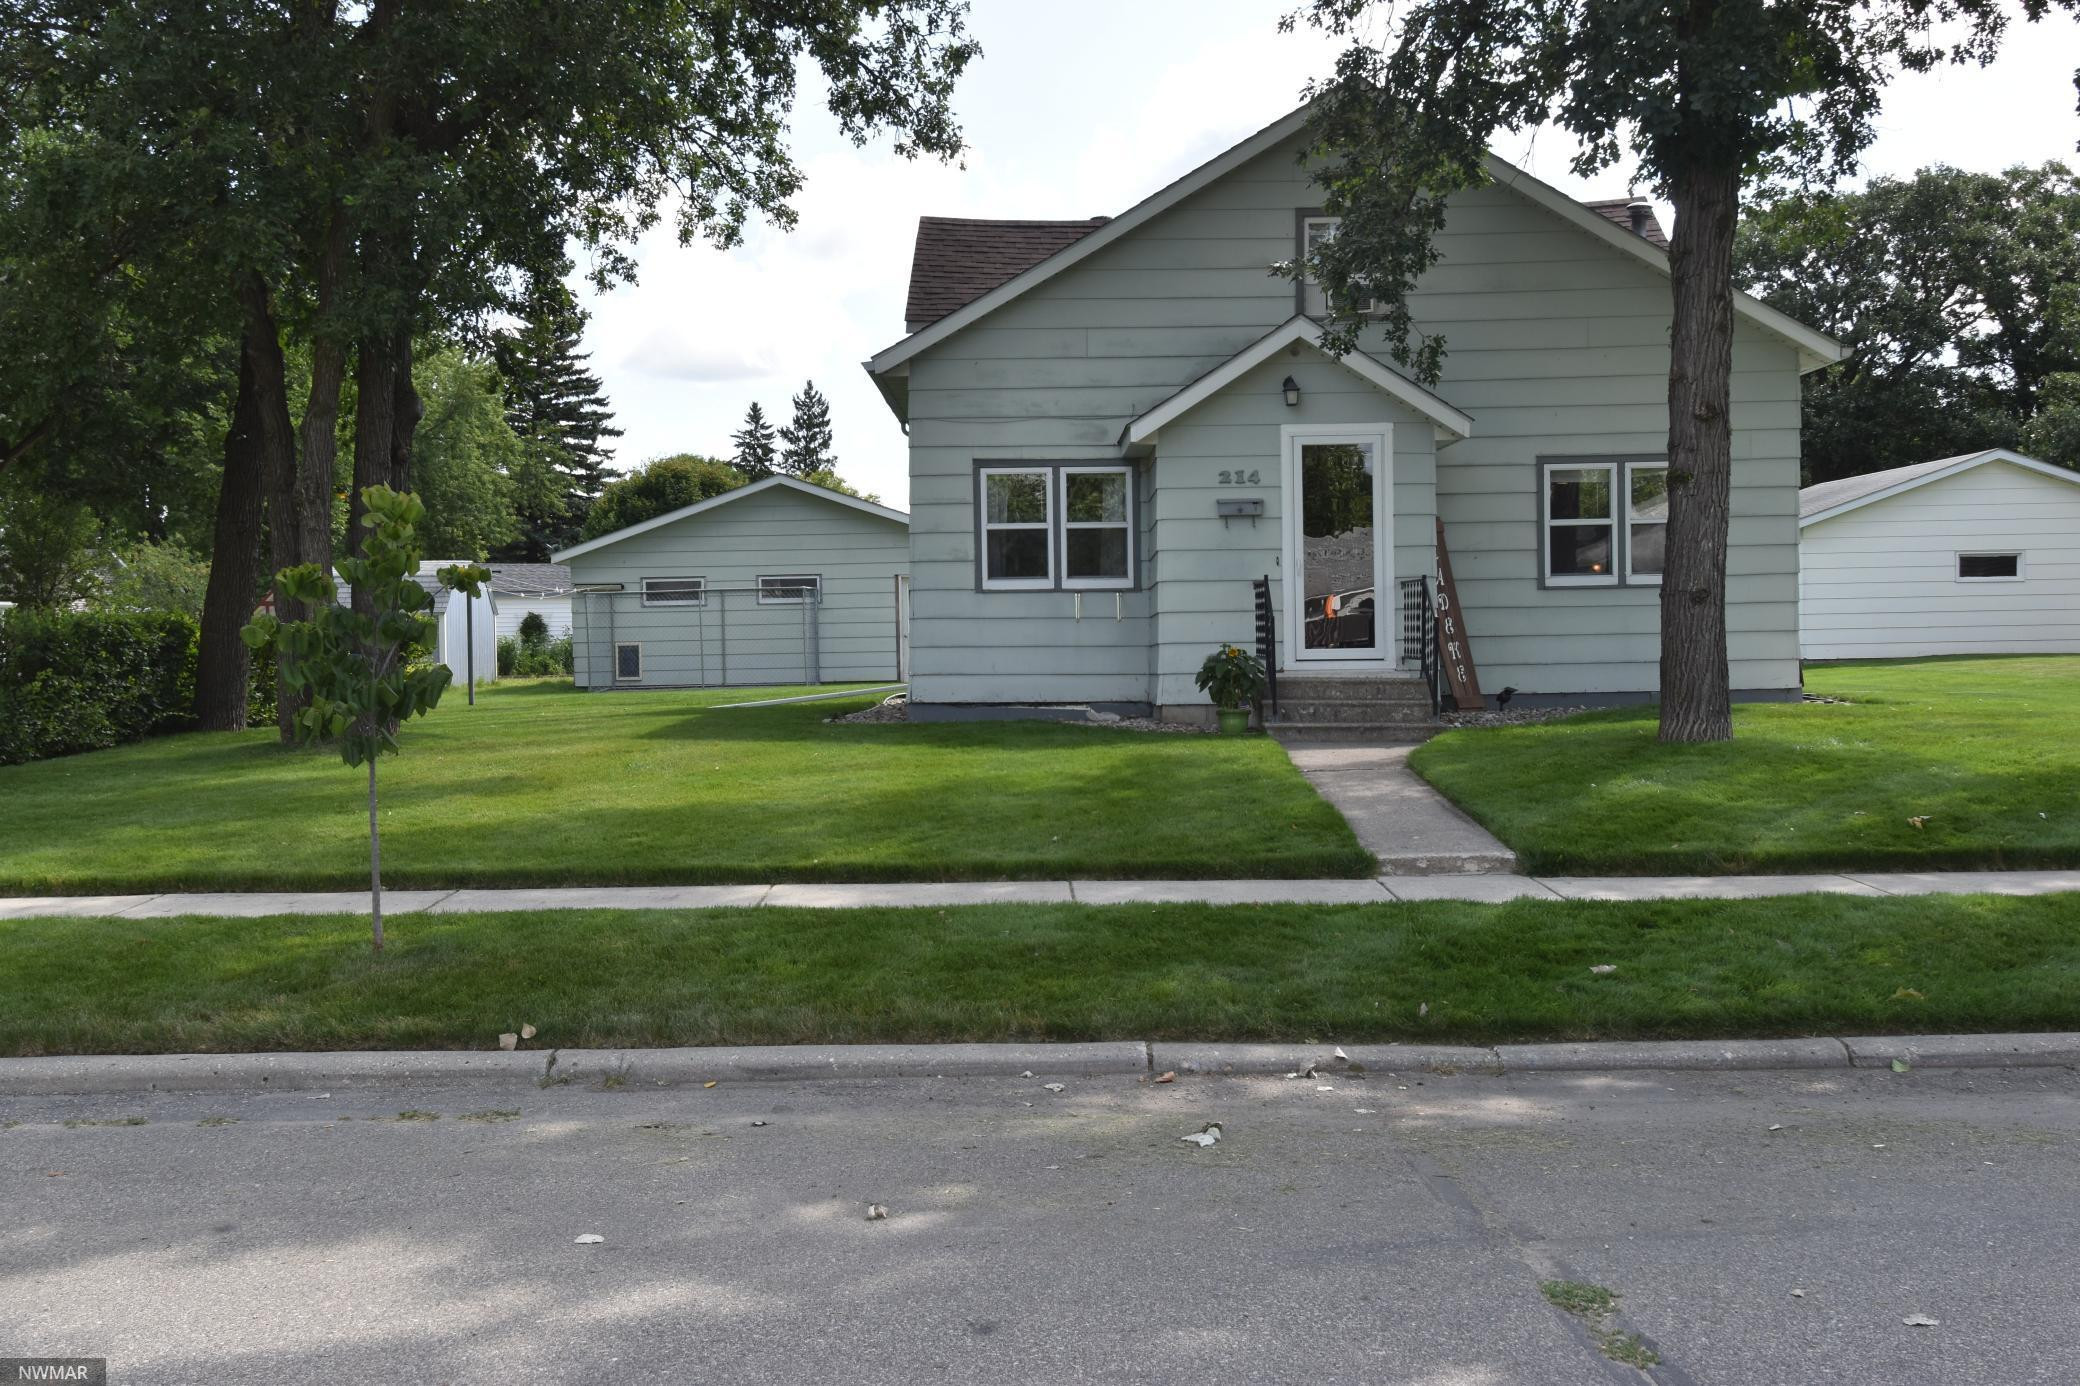 214 Kneale Avenue N, Thief River Falls, MN 56701